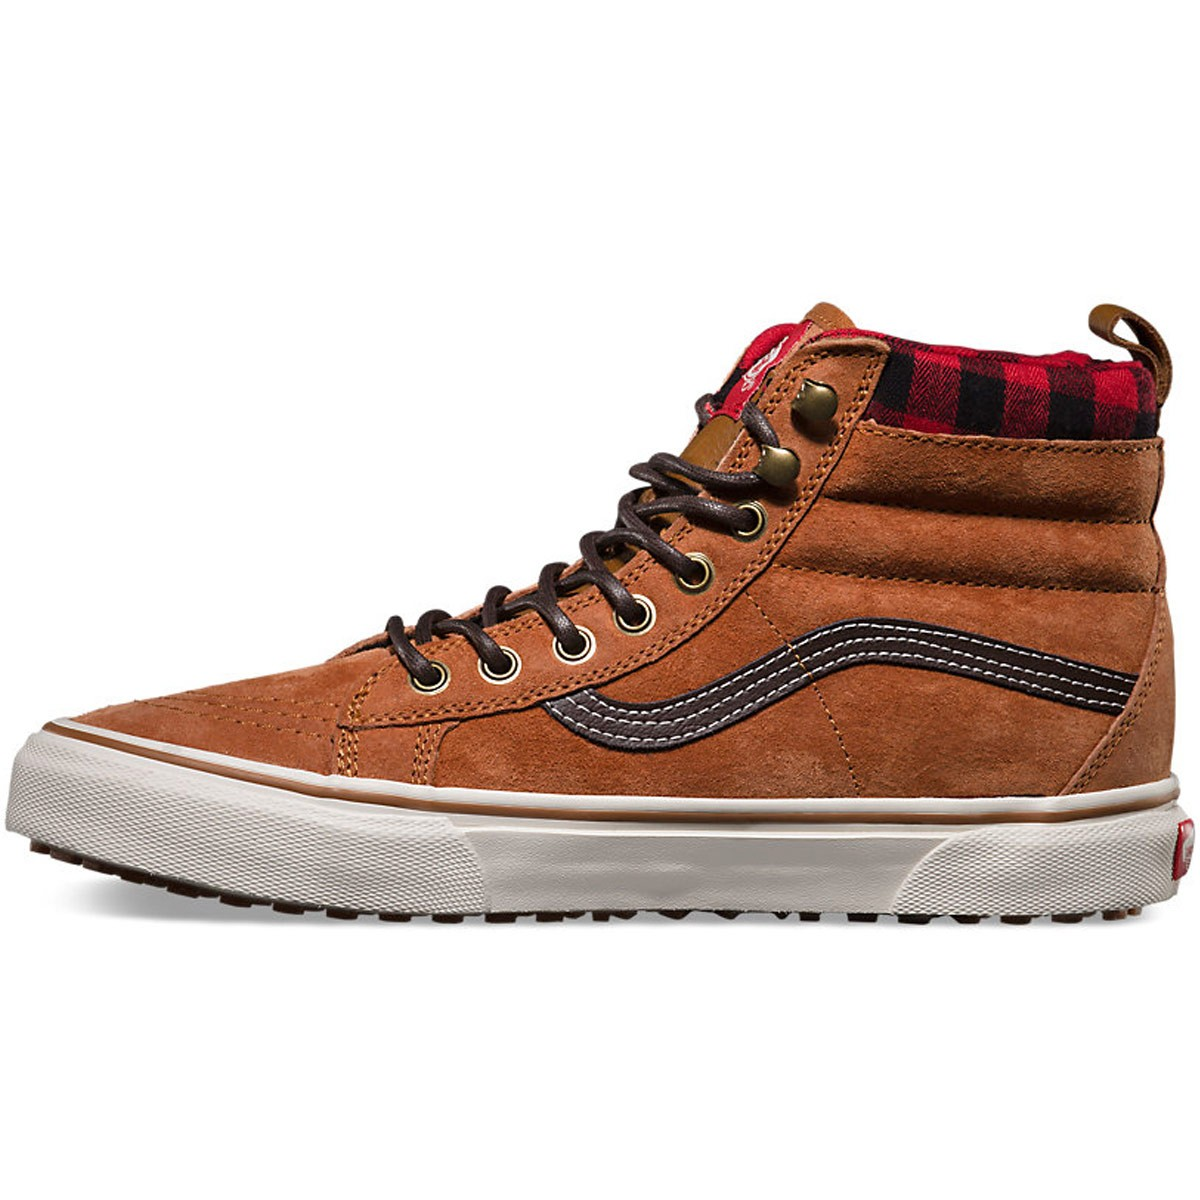 436d5240dfa612 vans sk8 hi mountain edition